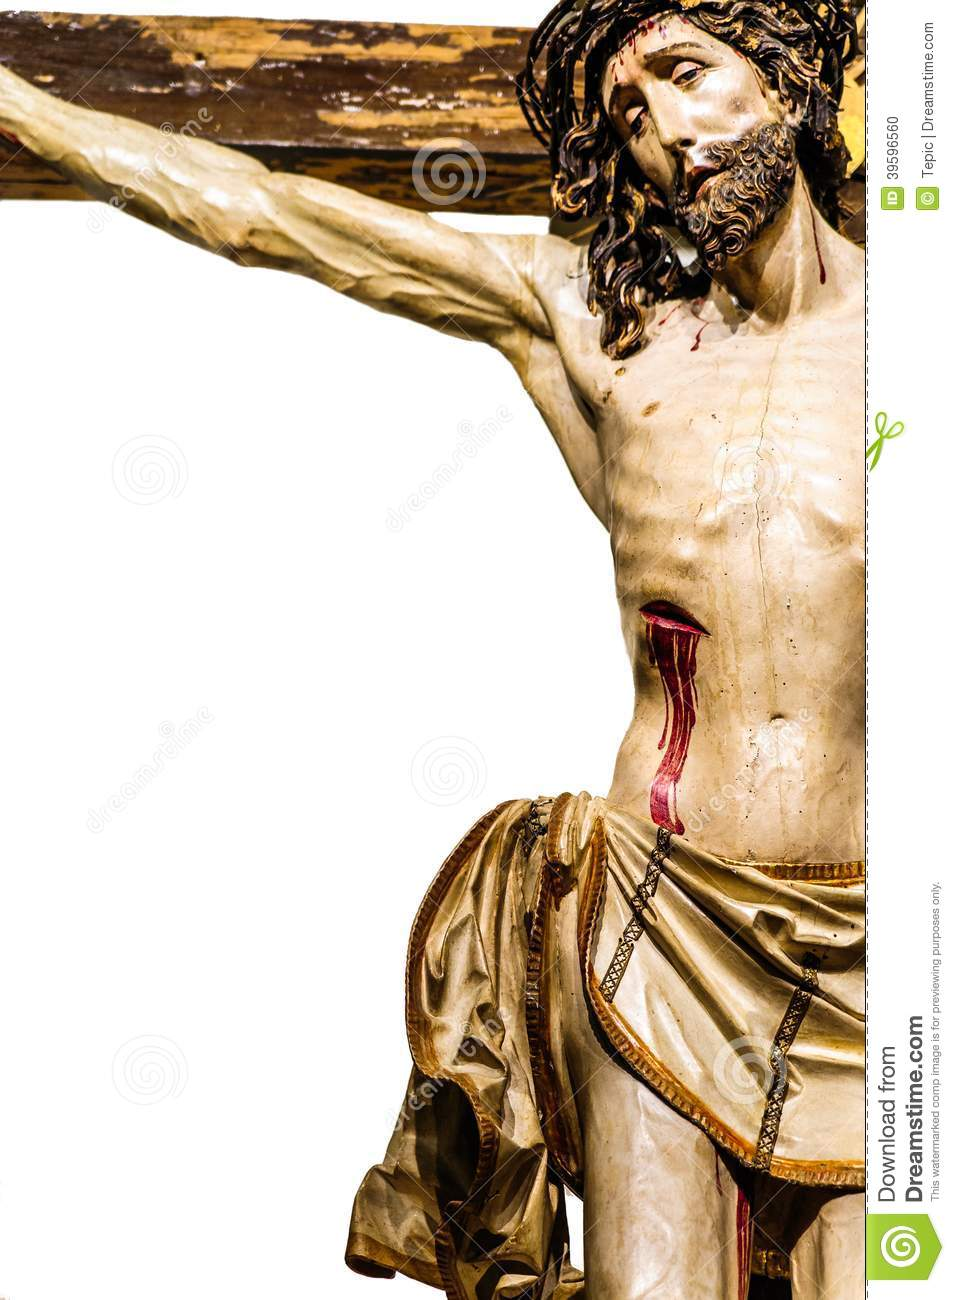 Jesus Christ On The Cross Stock Photo - Image: 39596560